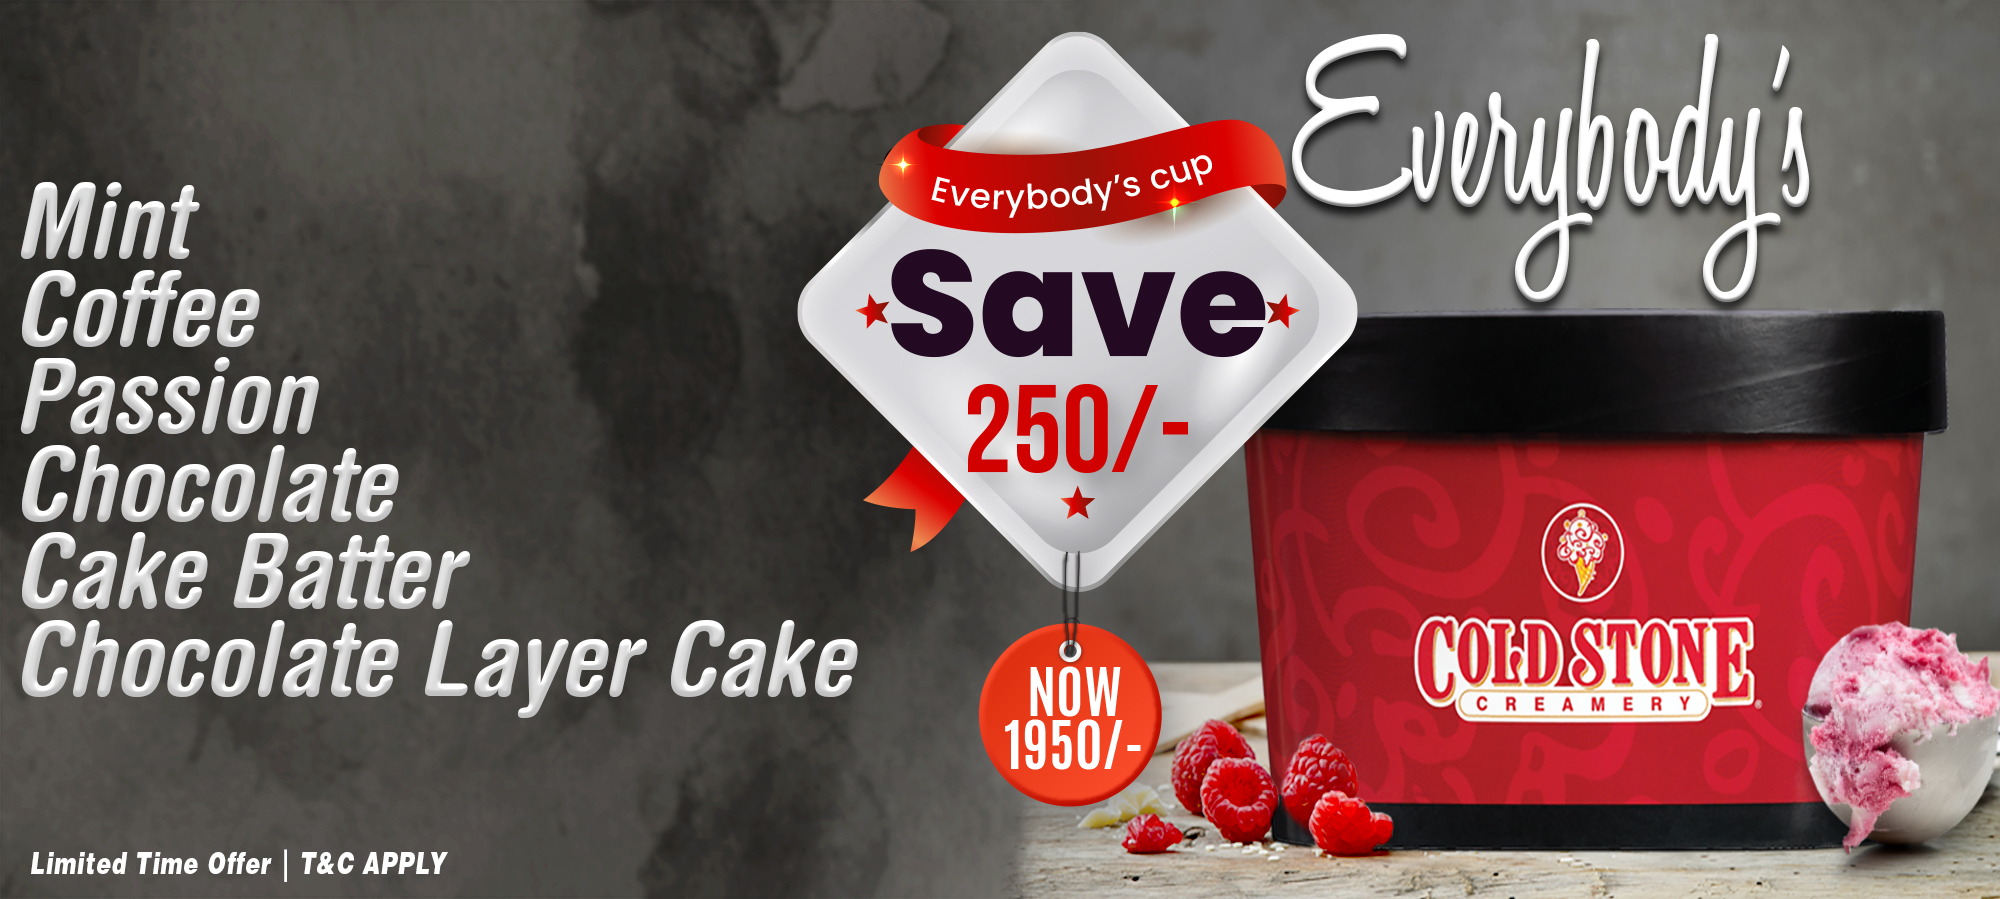 Everybody saves  with Coldstone